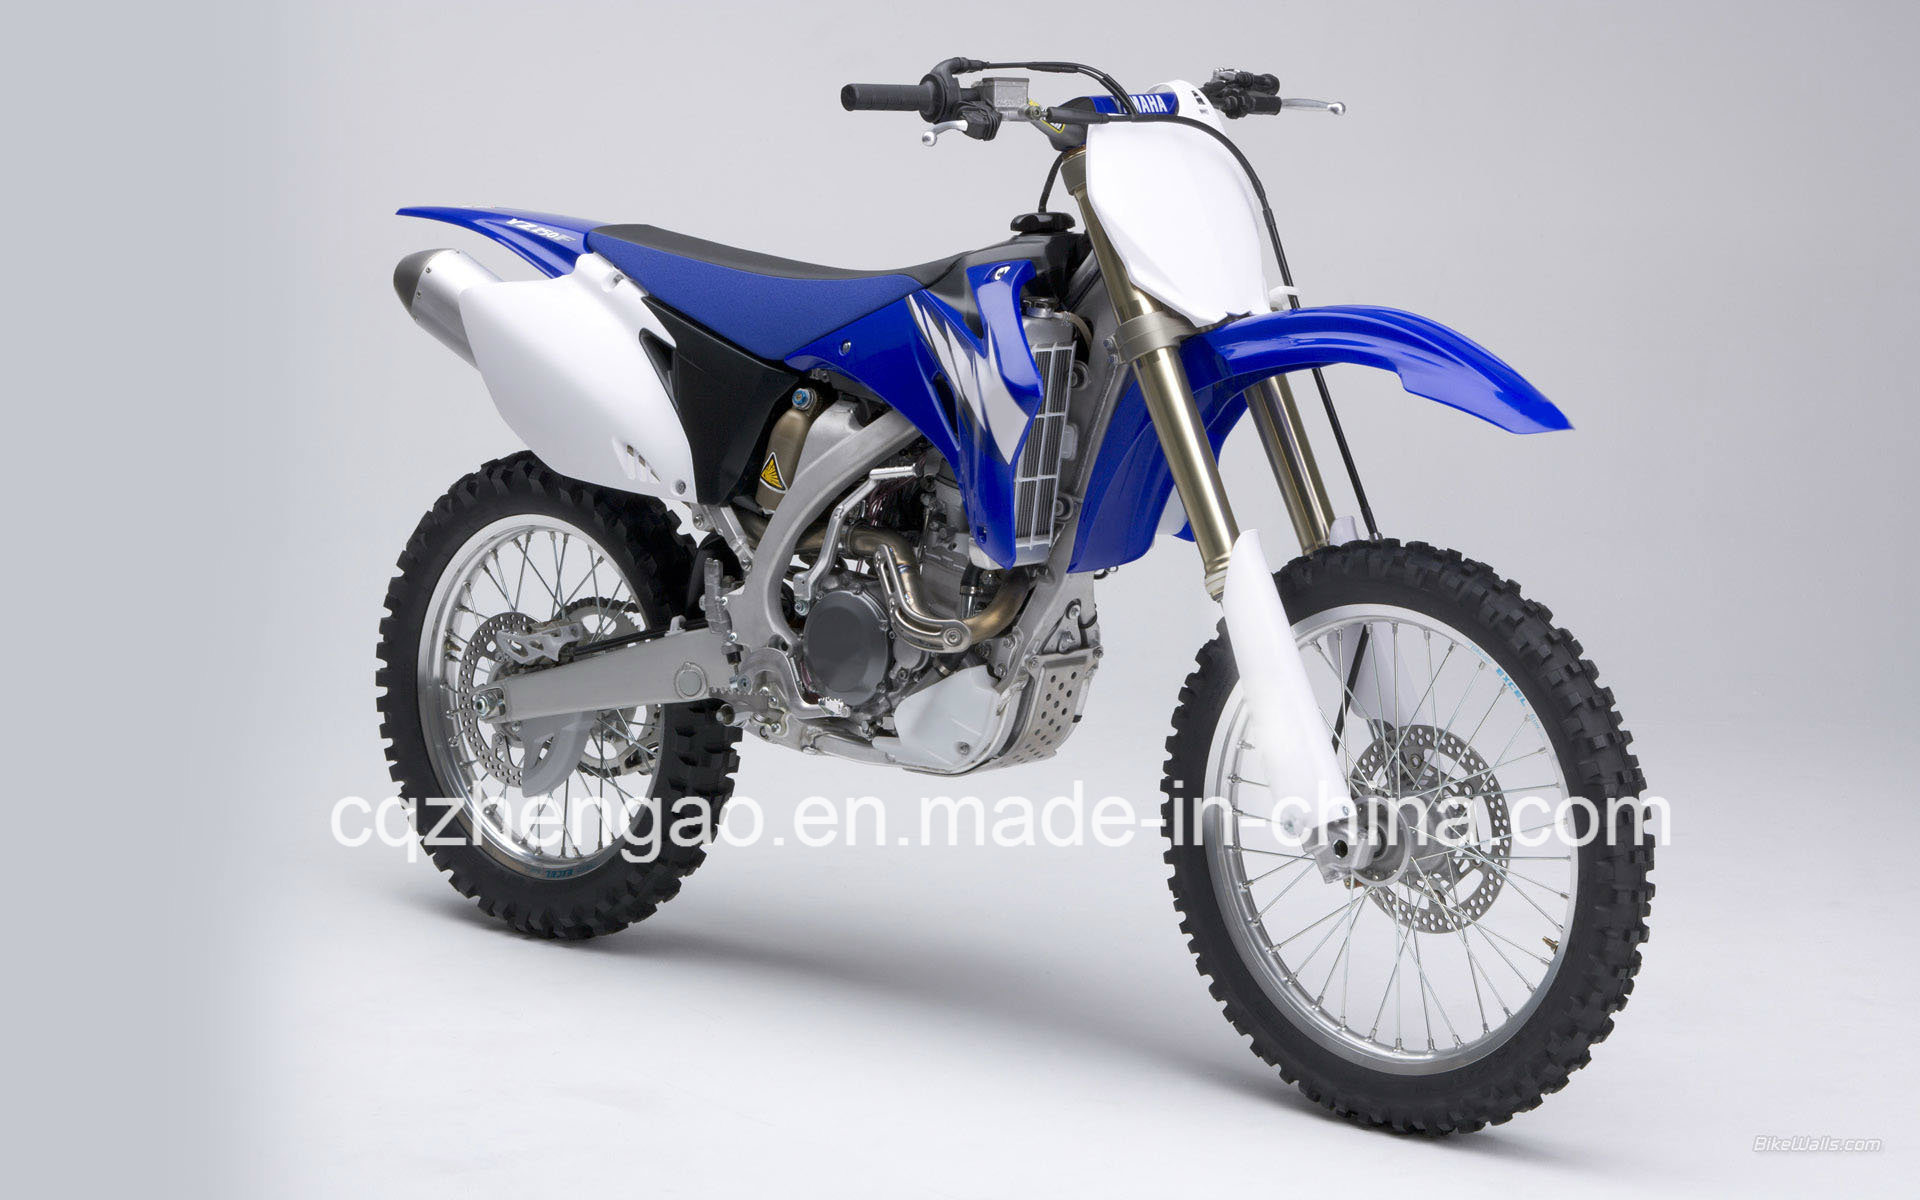 china new 250cc dirt bike yamaha yz250 moto for enduro and